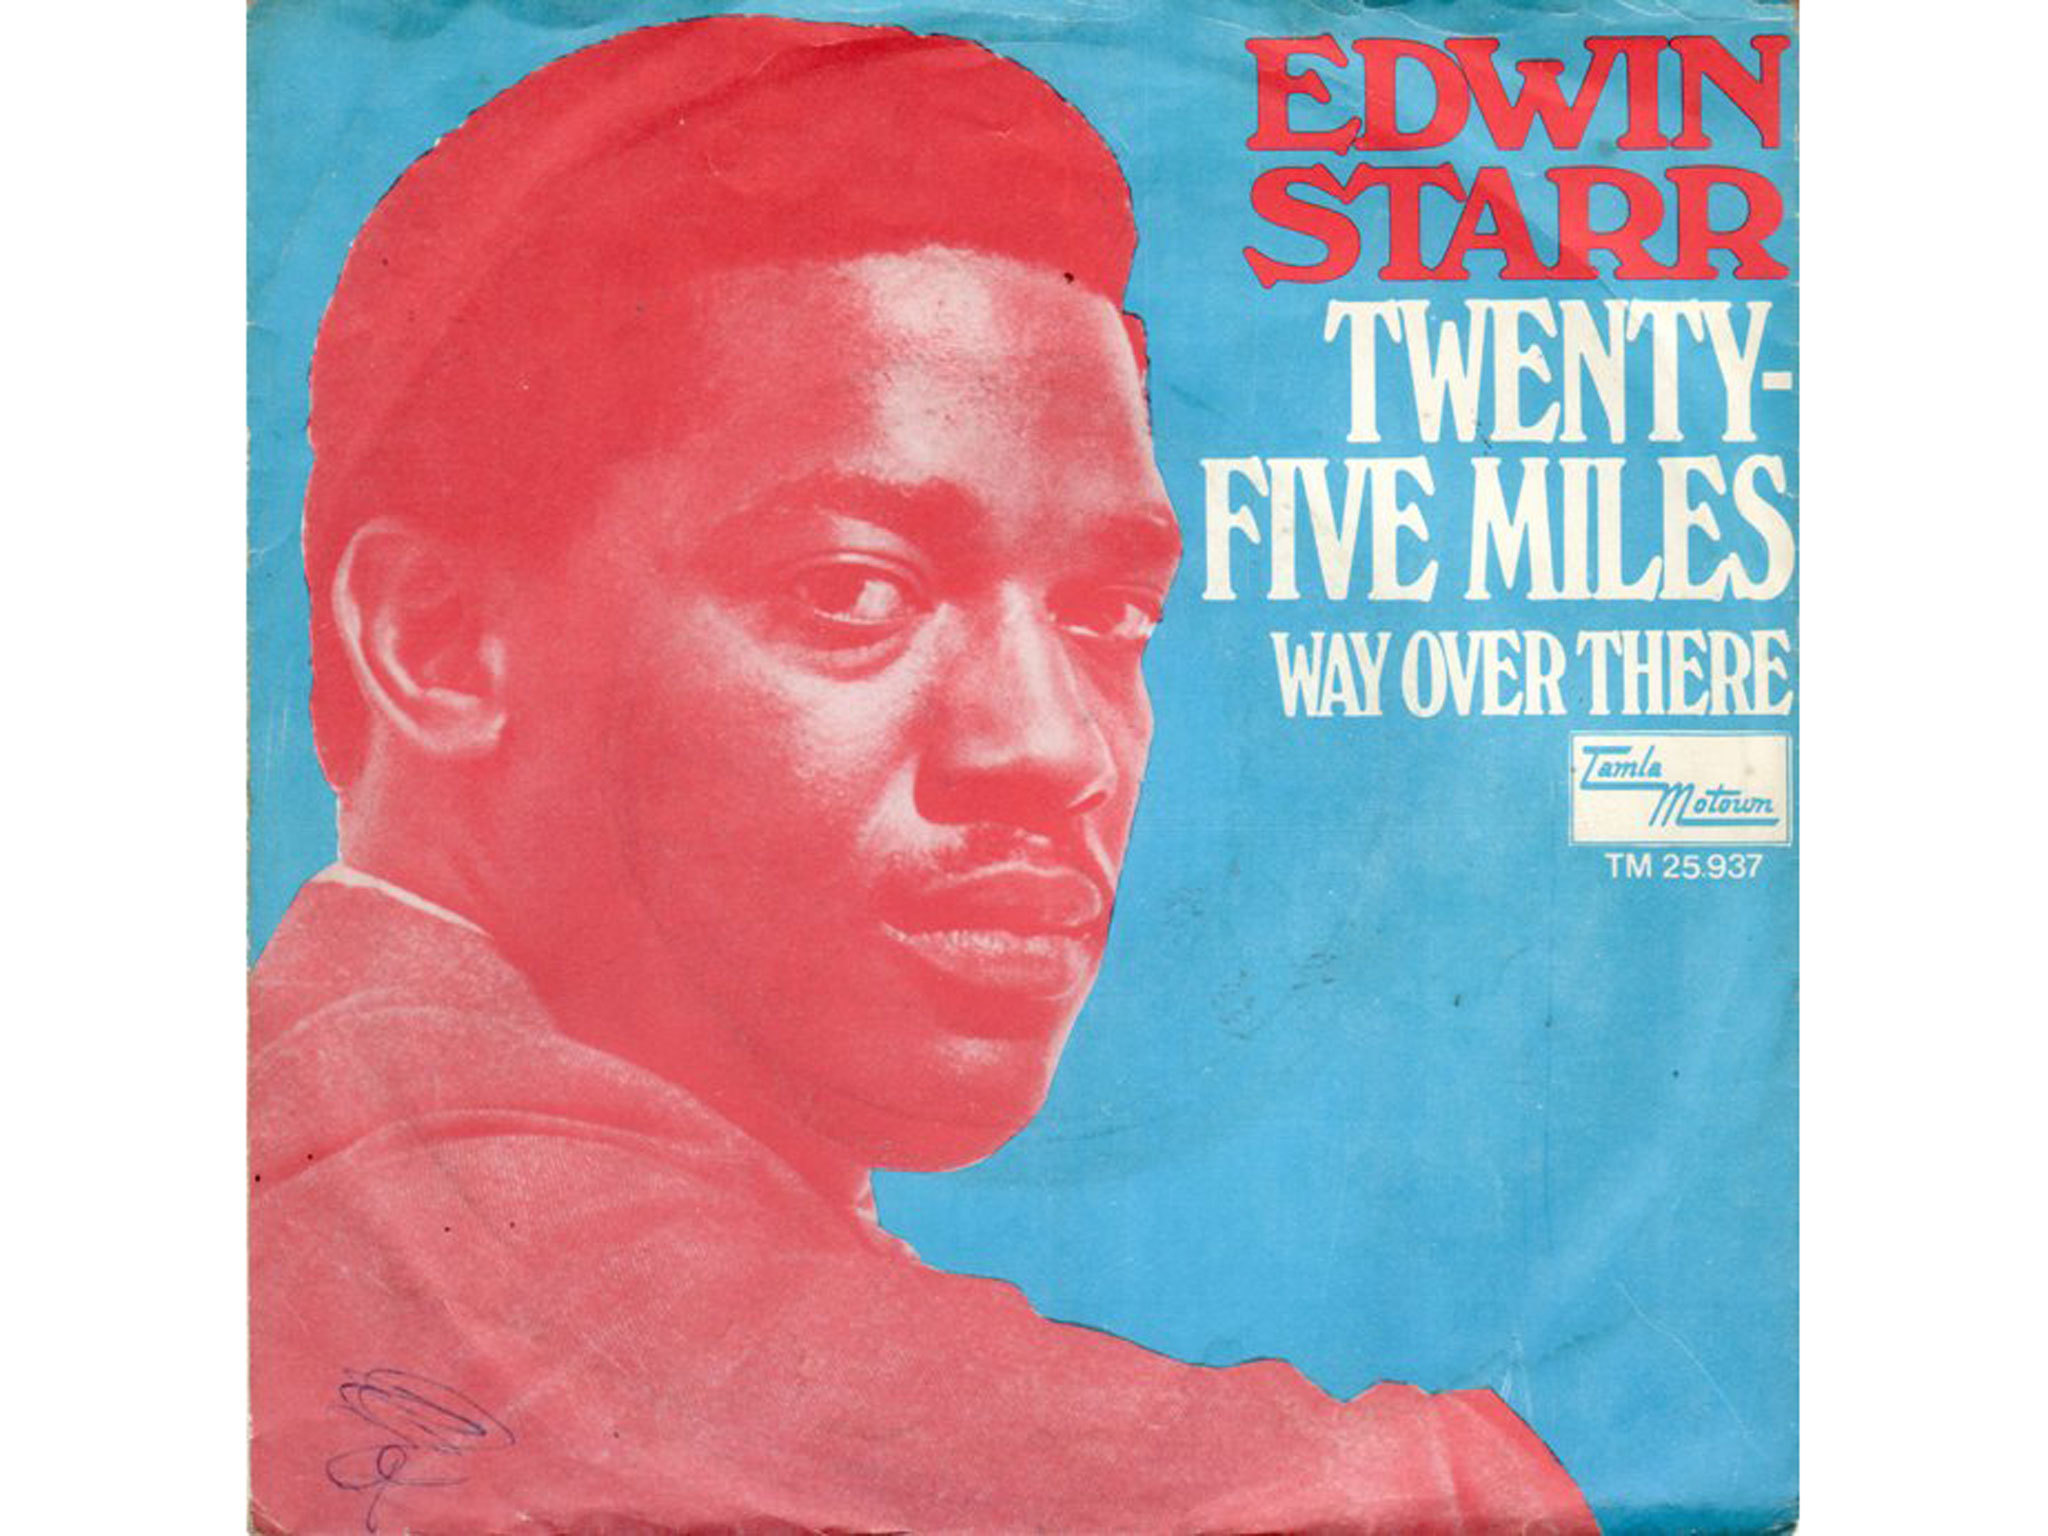 Edwin Starr, 25 miles, best soul songs